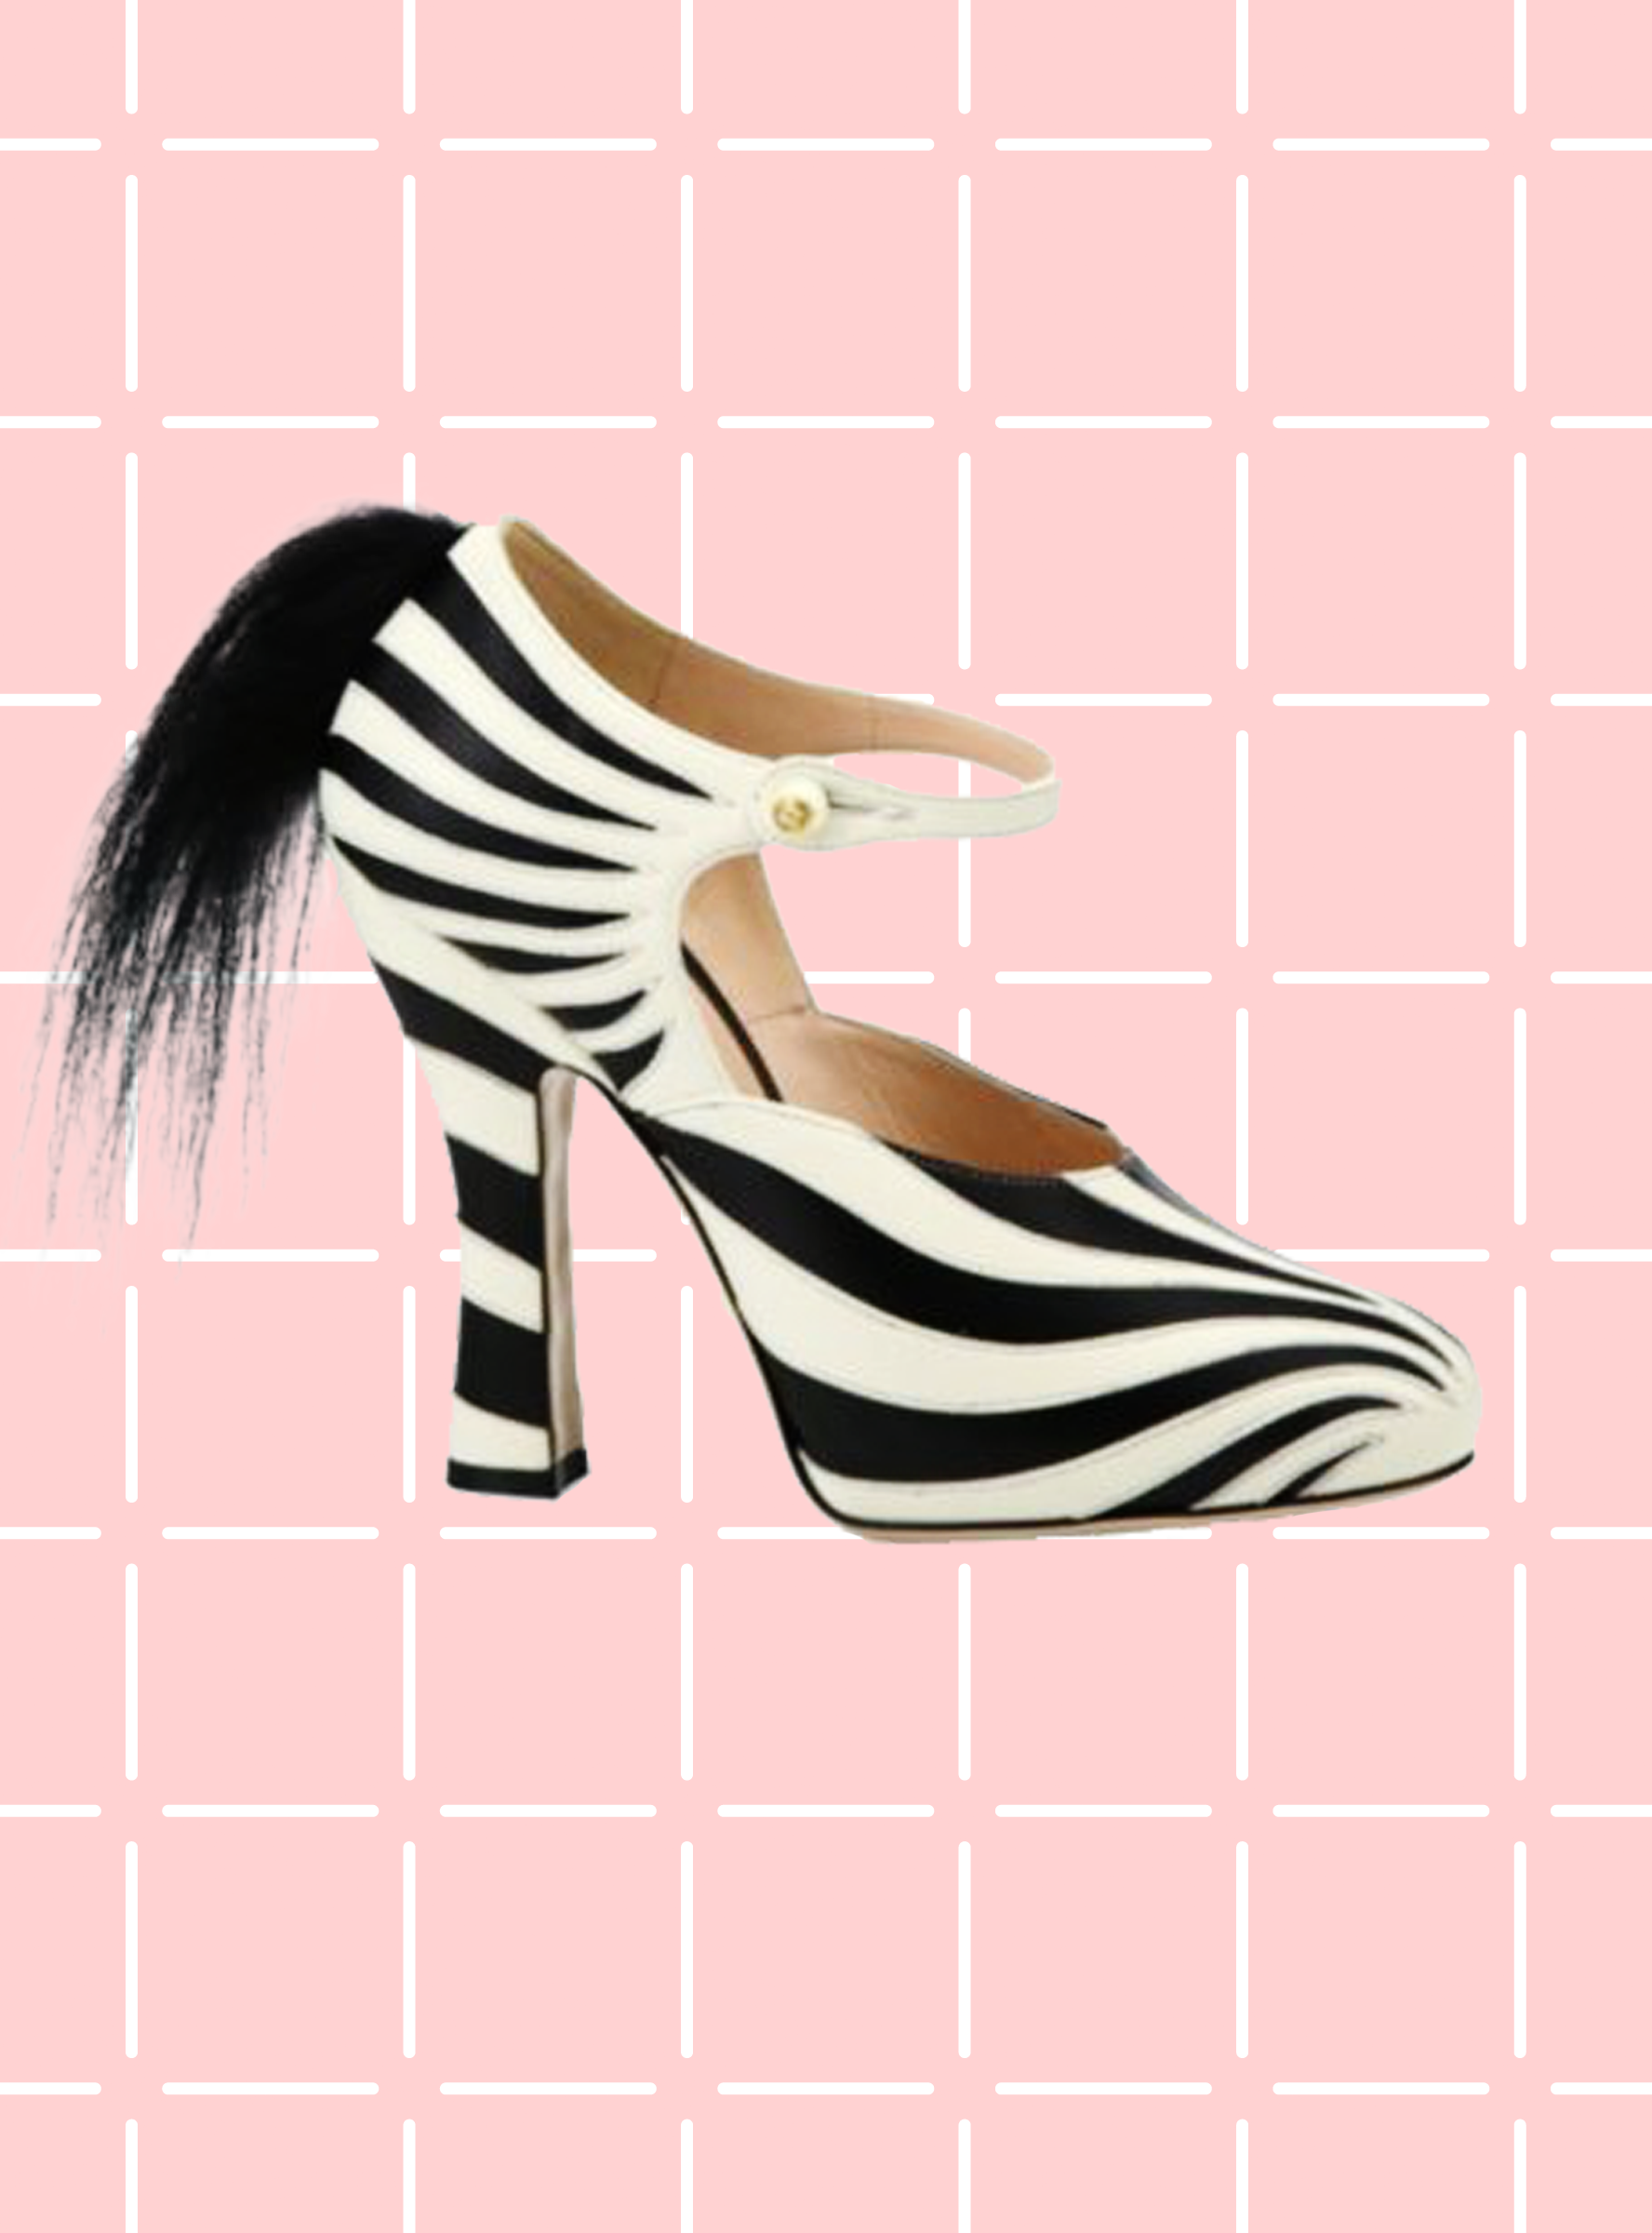 This Gucci Shoe Is Very LOL, Wut? | Gucci shoes, Gucci and Zebra print